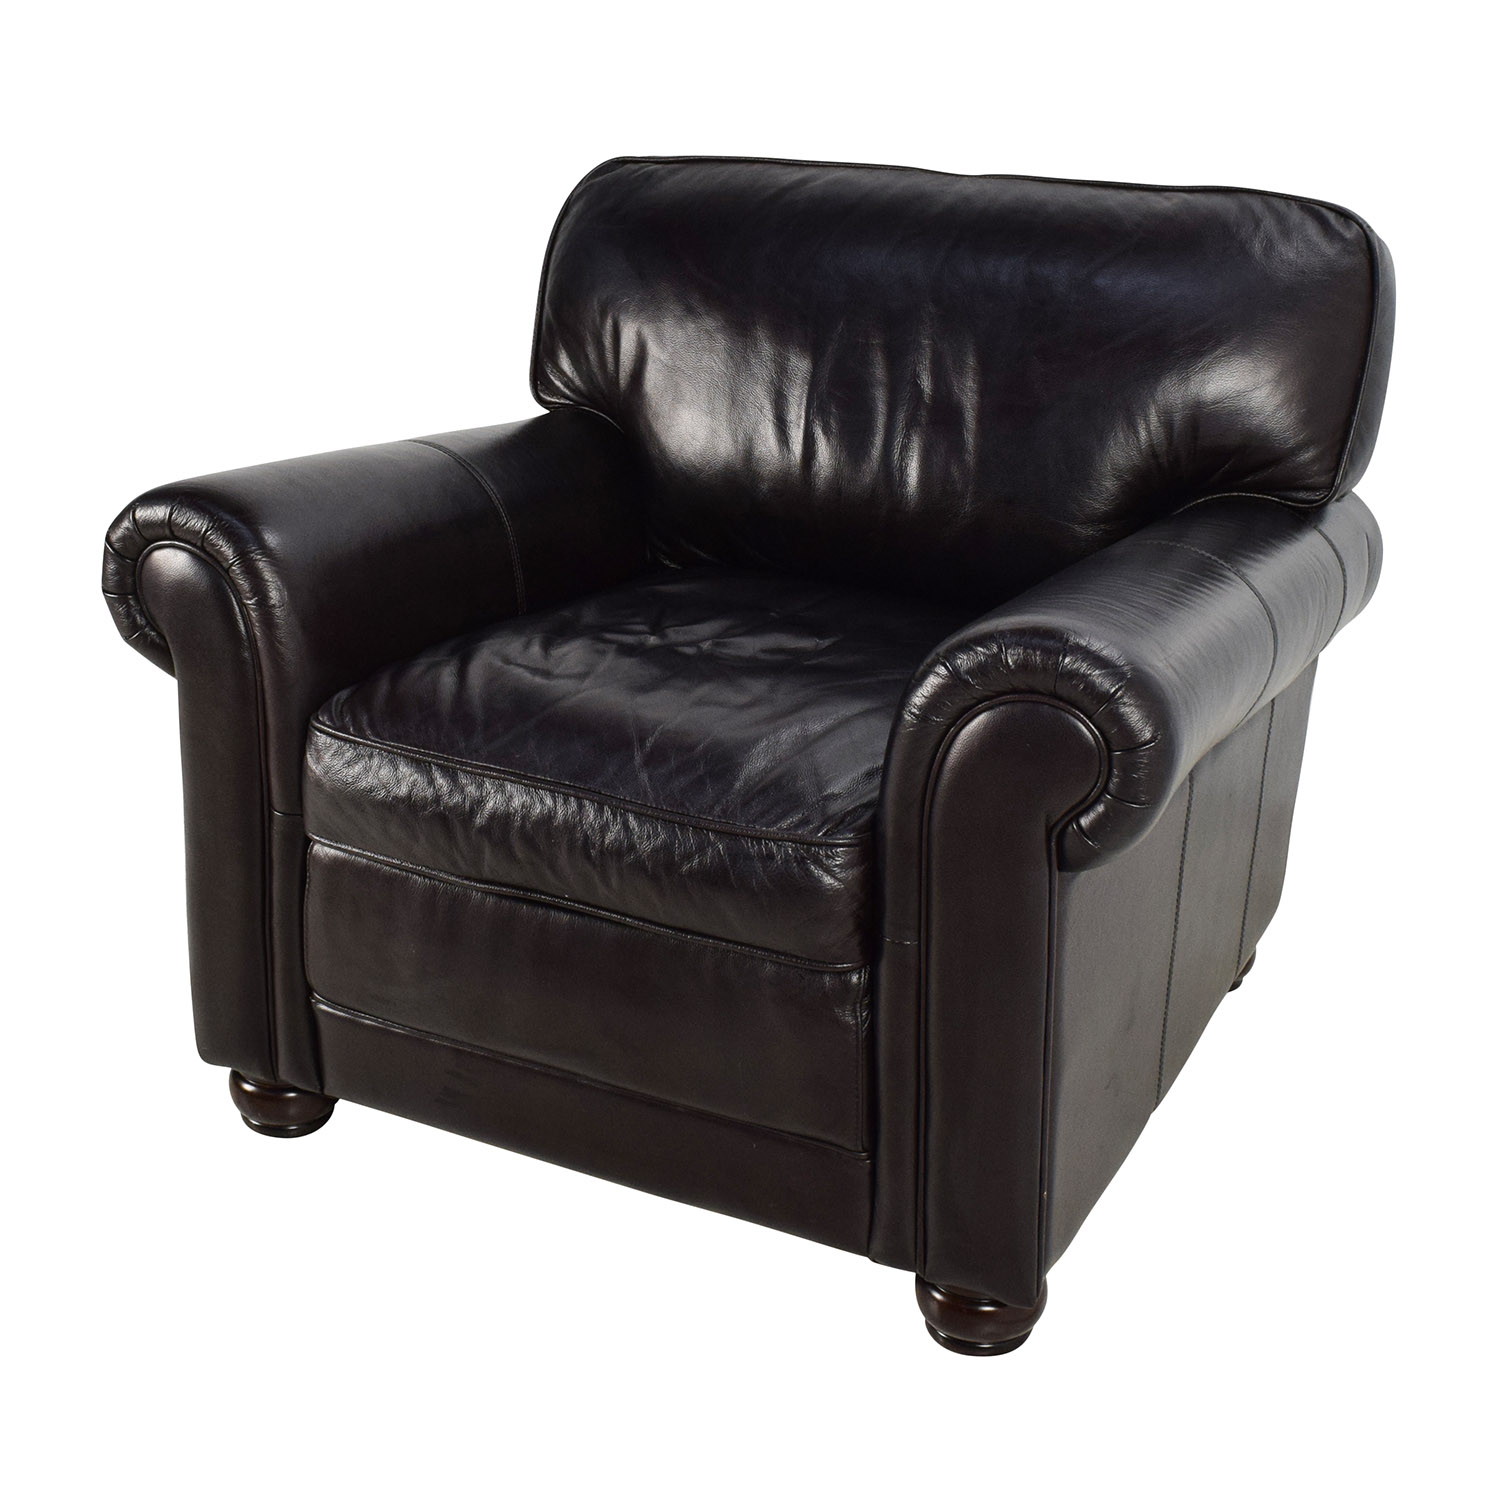 74 Off Bobs Furniture Bob S Furniture Leather Dark